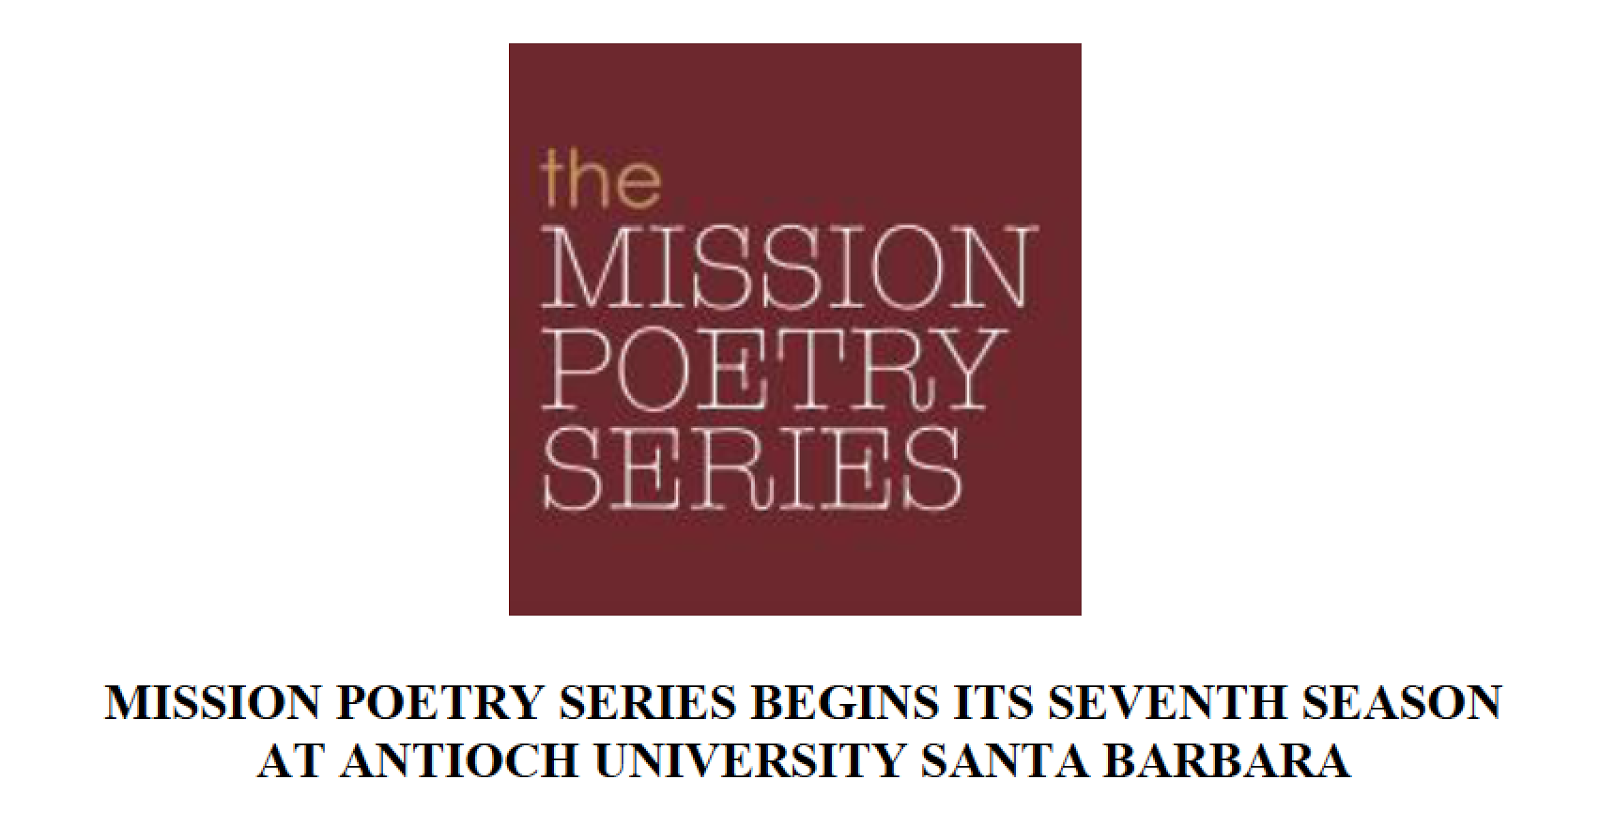 La bloga gluten free chicano cooks mission poetry ides of santa barbaras mission poetry series directed by la bloga friend emma trelles and curated by la bloga friday columnist melinda palacio launches its fandeluxe Images